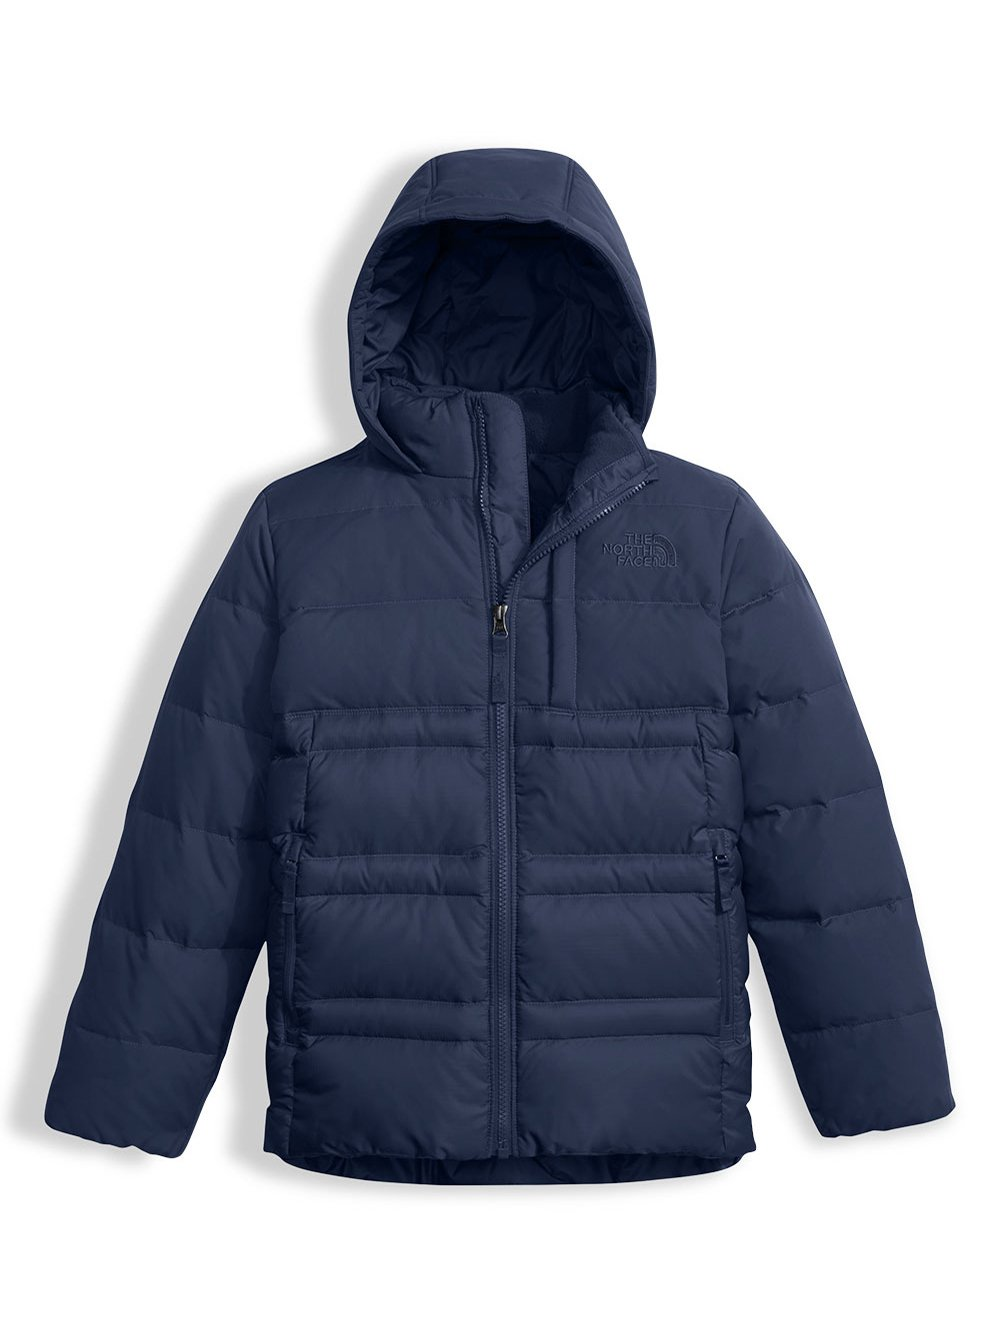 The North Face Big Boys' Franklin Down Jacket - cosmic blue, m/10-12